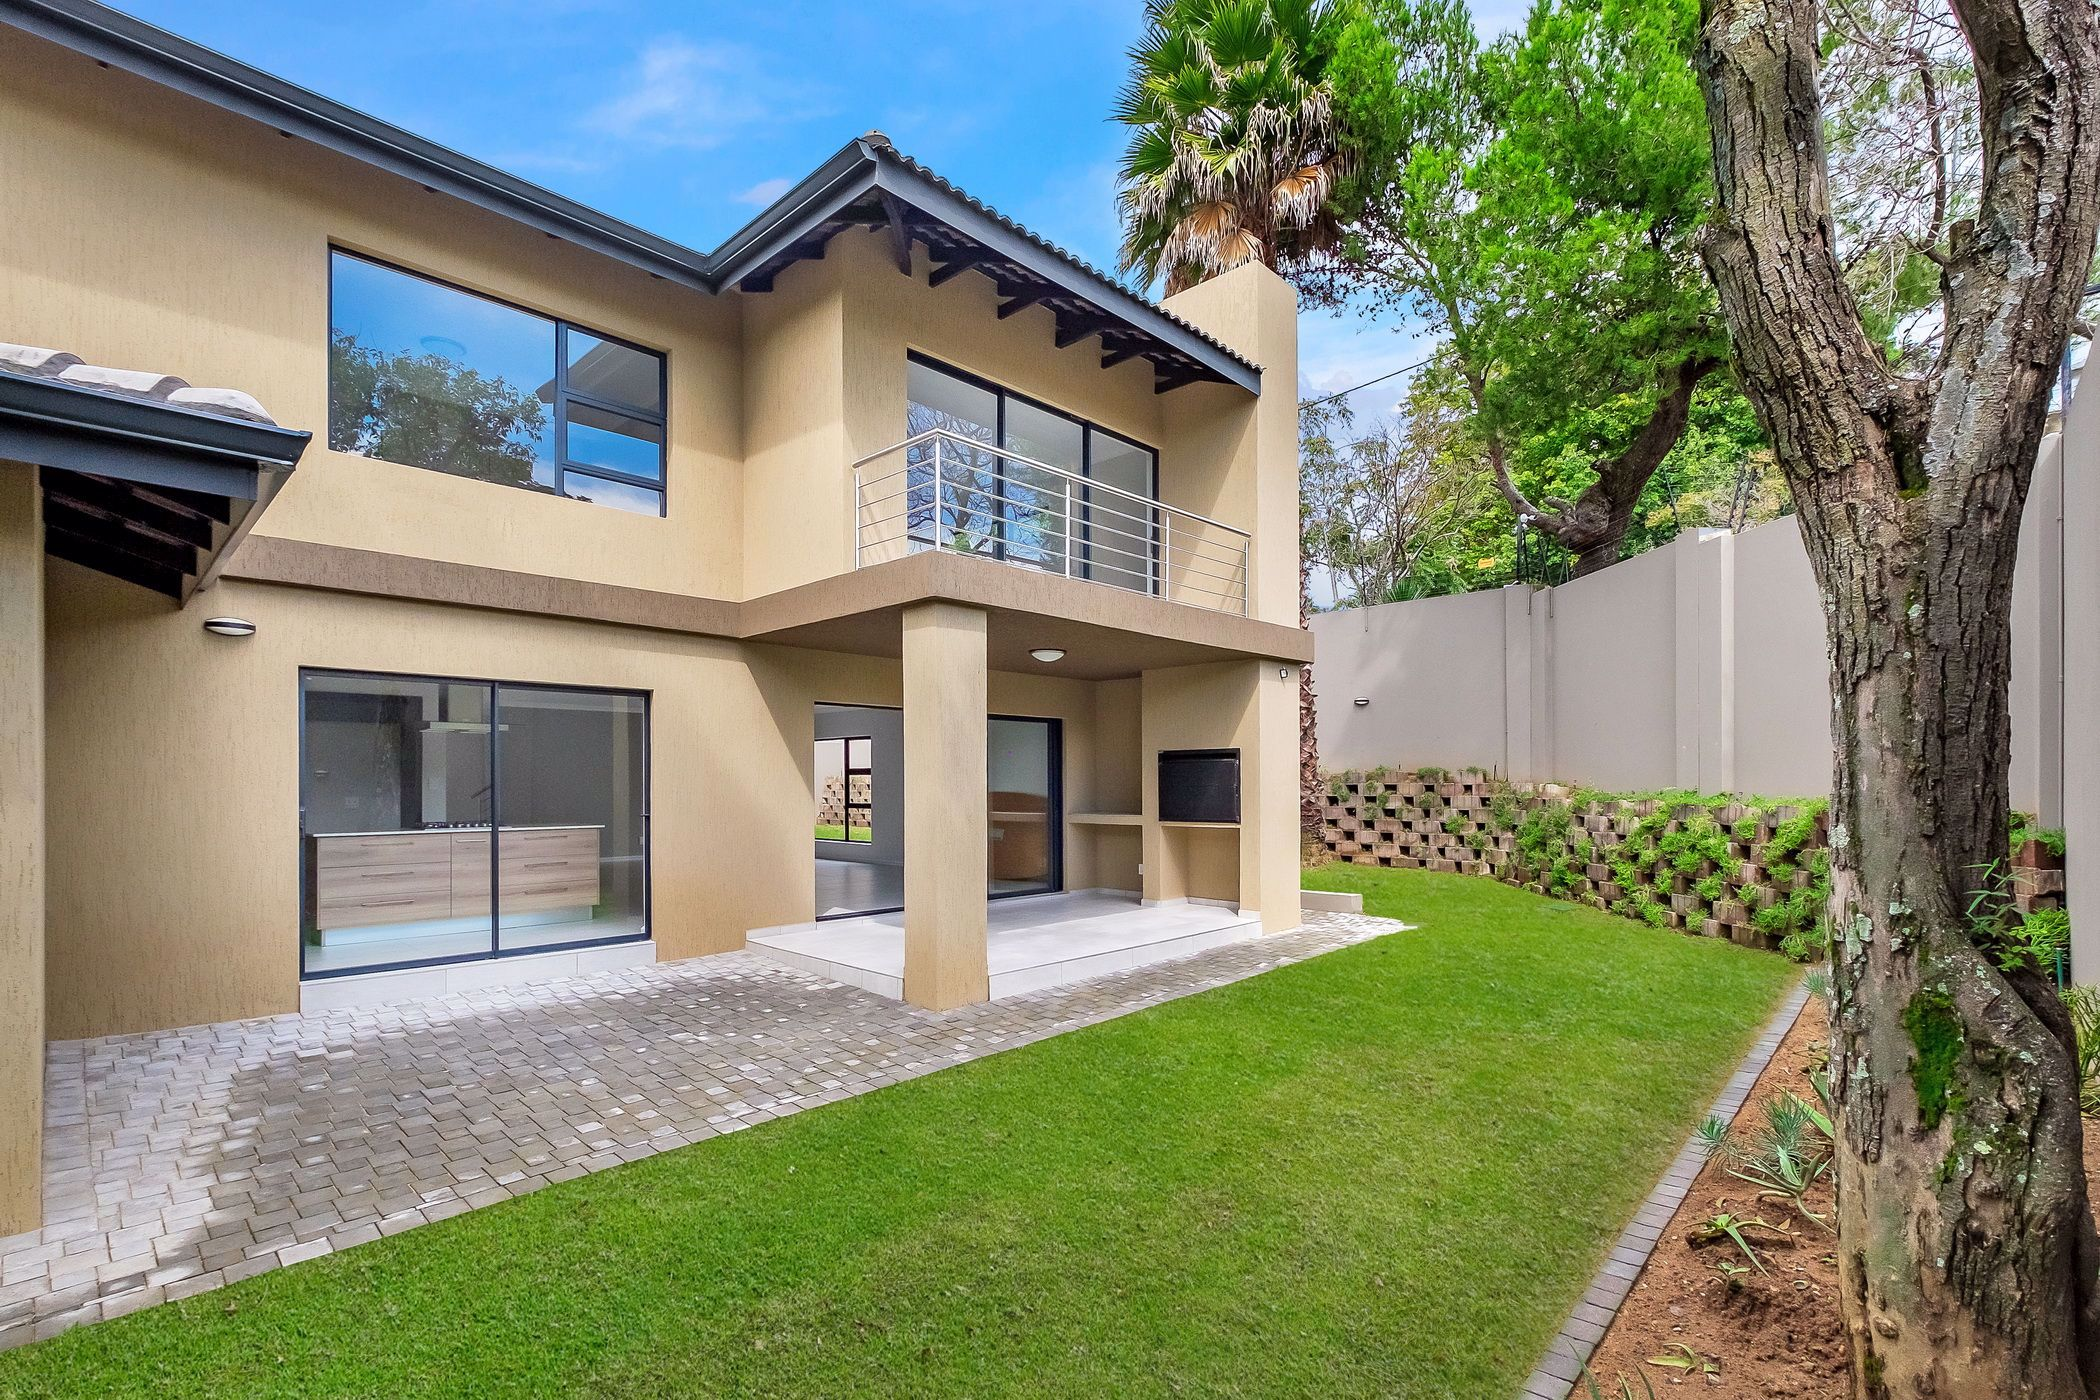 5 bedroom cluster house for sale in Rivonia